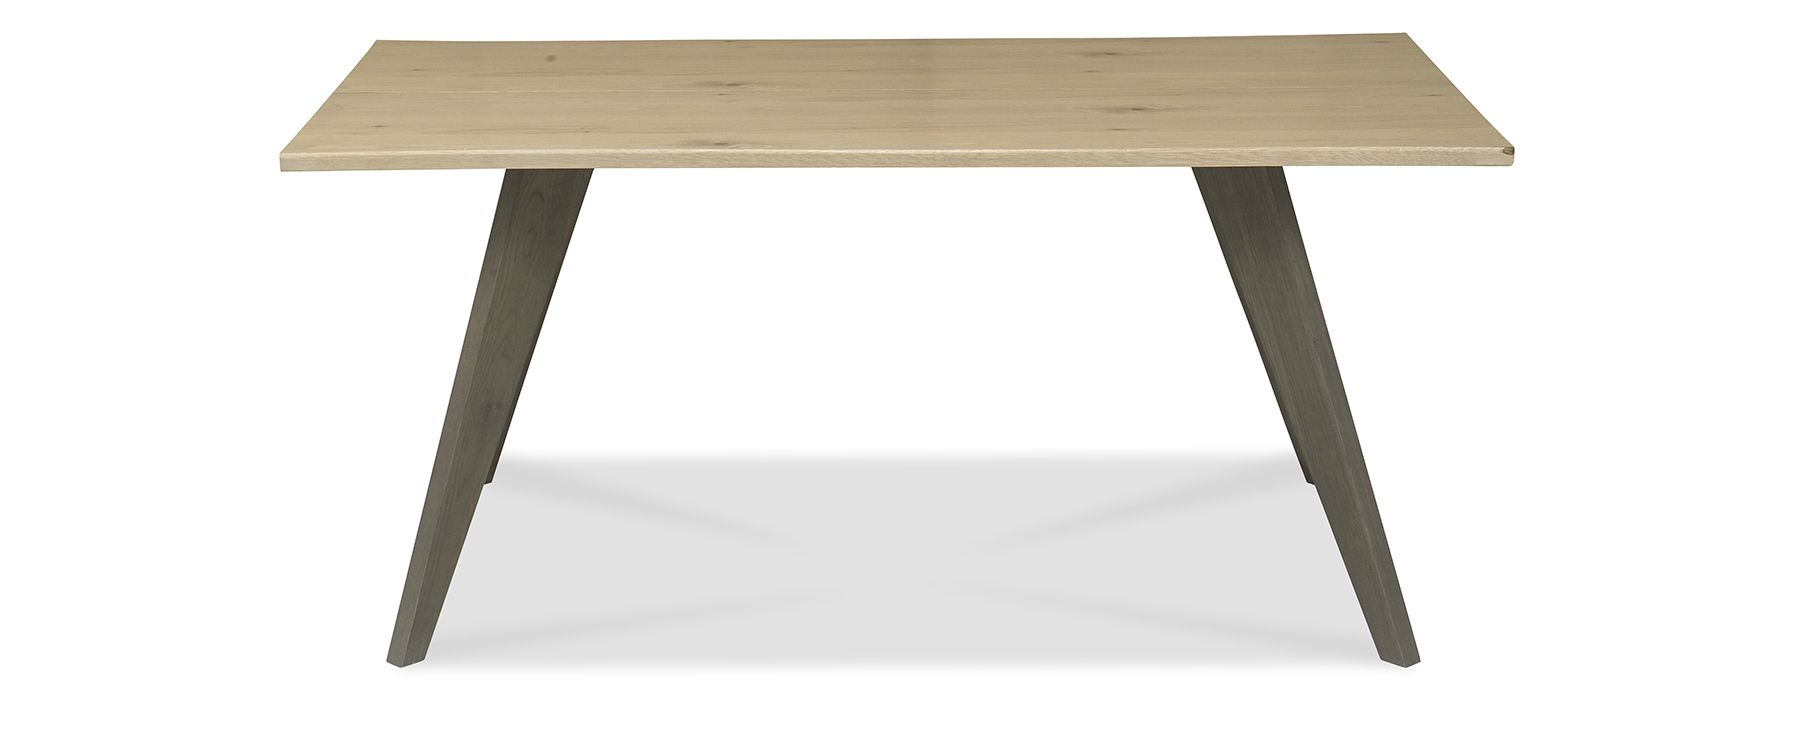 CARELL DINING TABLE - L180cm x D96cm xH77cm - FRONT DETAIL